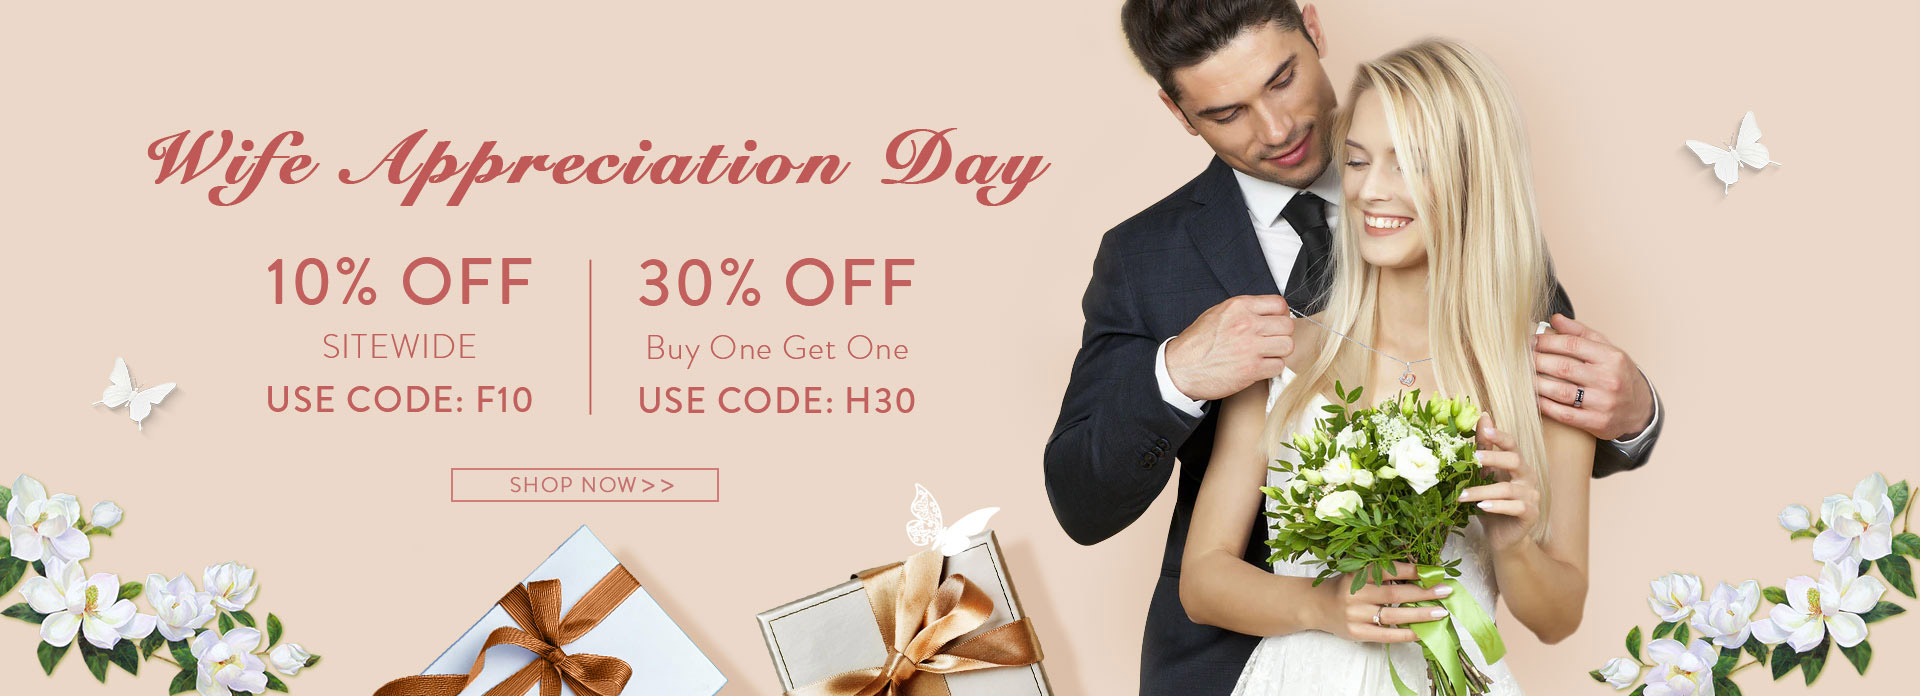 Wife Appreciation Day Sale 2020